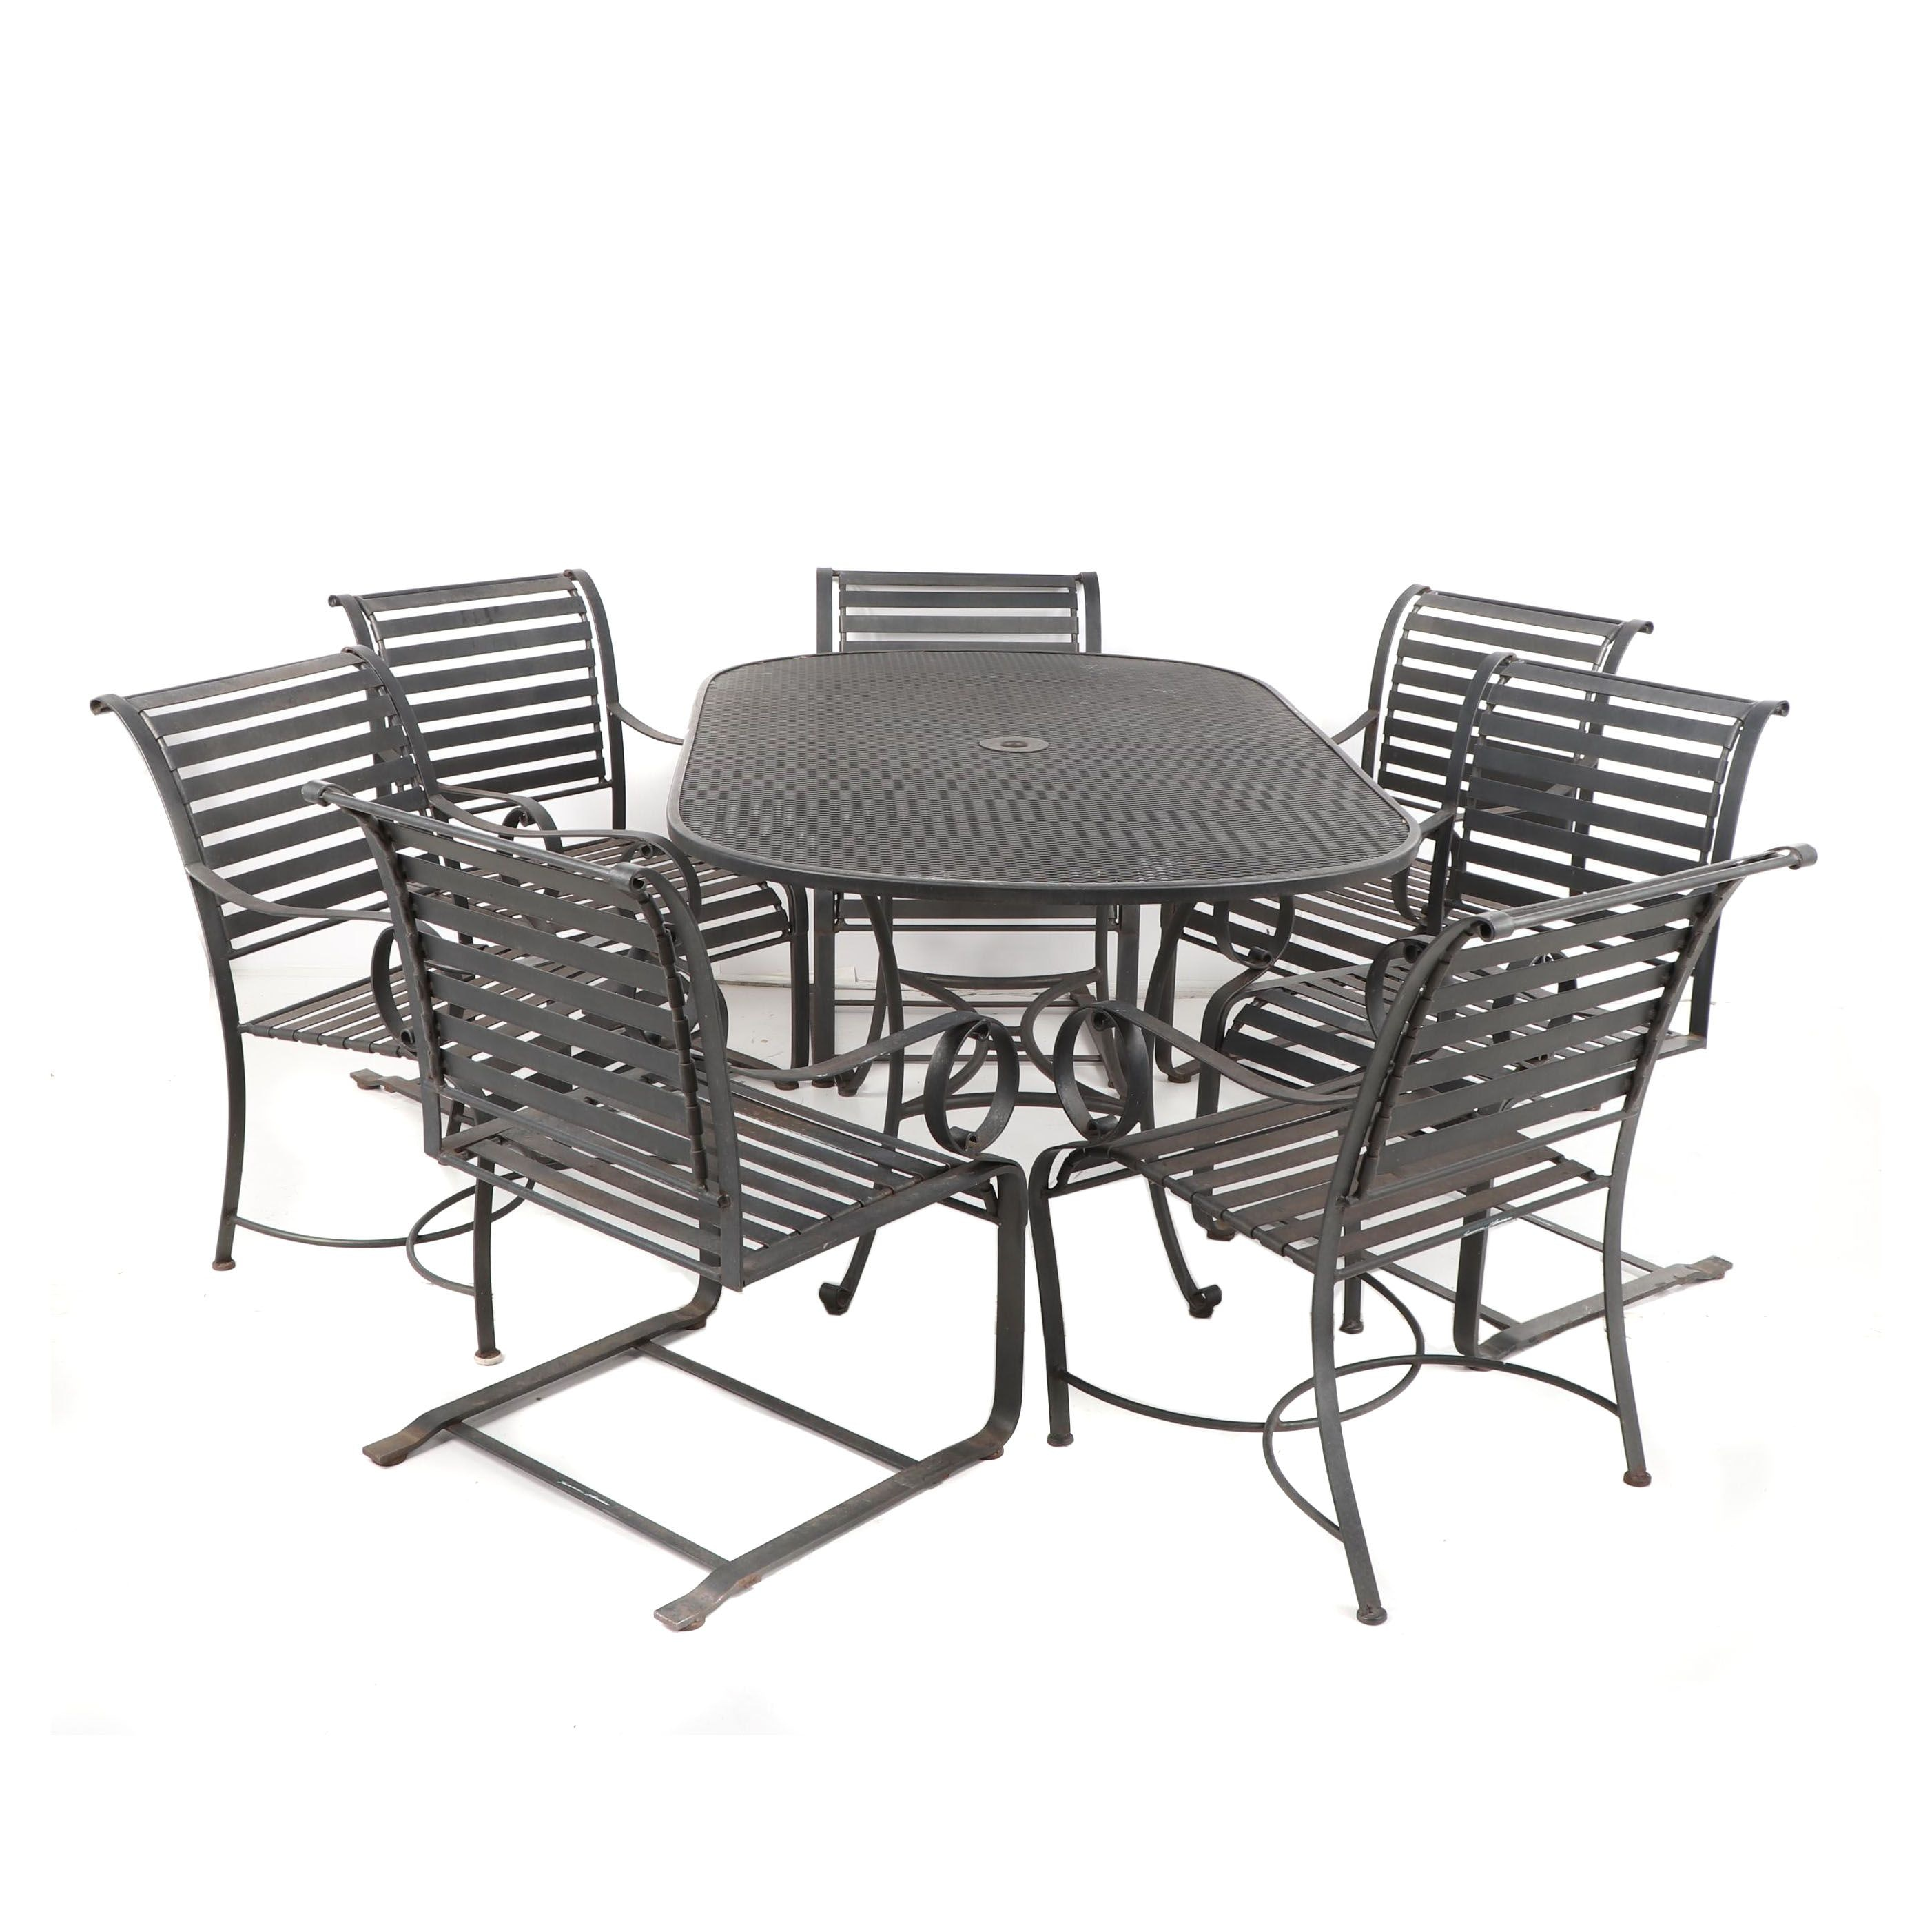 """Summer Classics"" Metal Patio Table and Chairs"